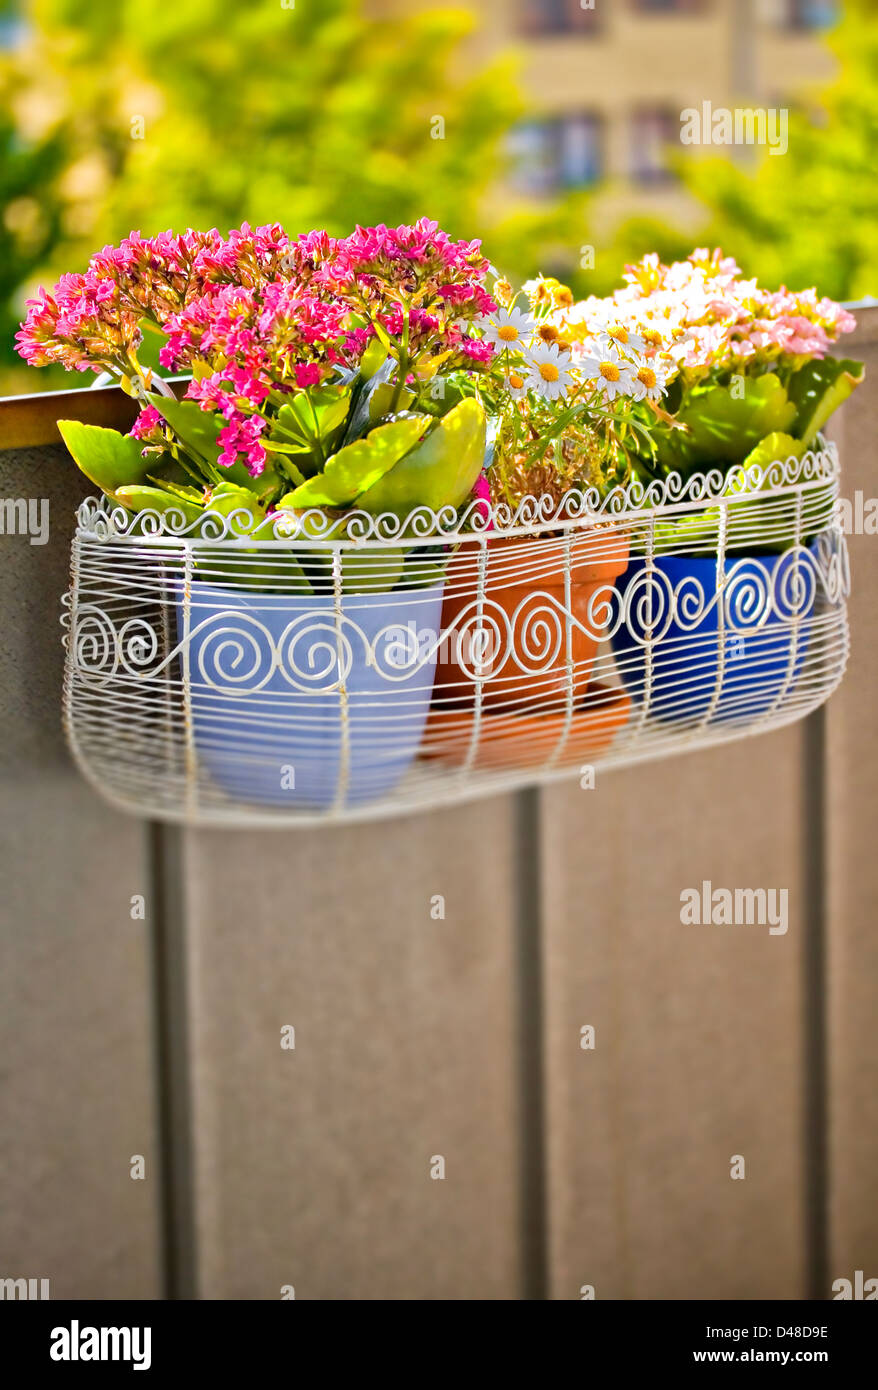 Image of a balcony flower box filled with plant pots - Stock Image